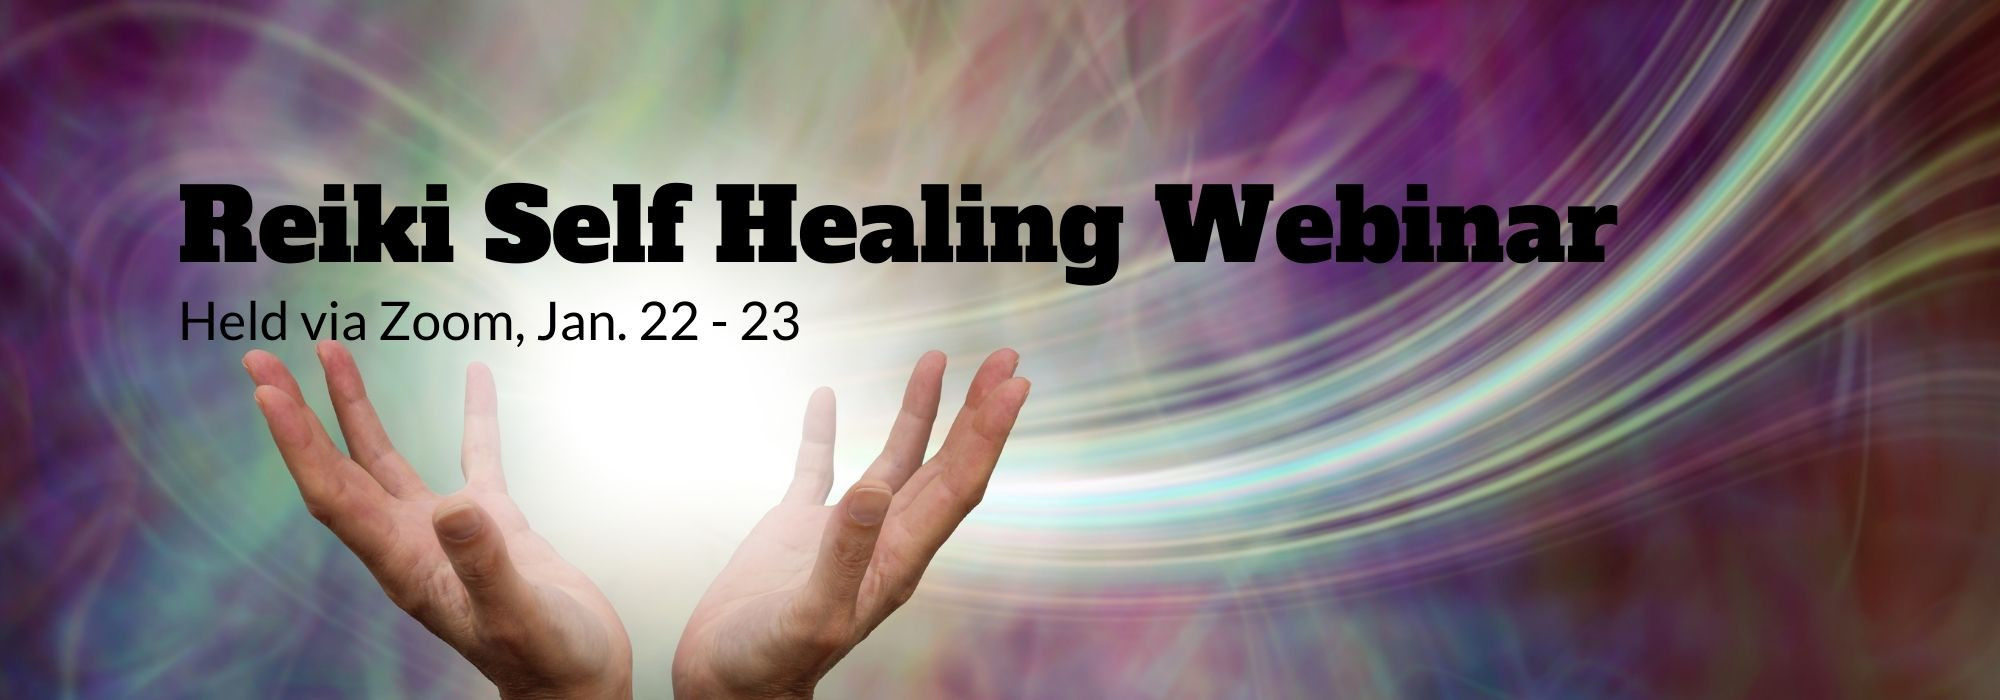 Reiki Self Healing Webinar, Held Via Zoom, Jan 22-23